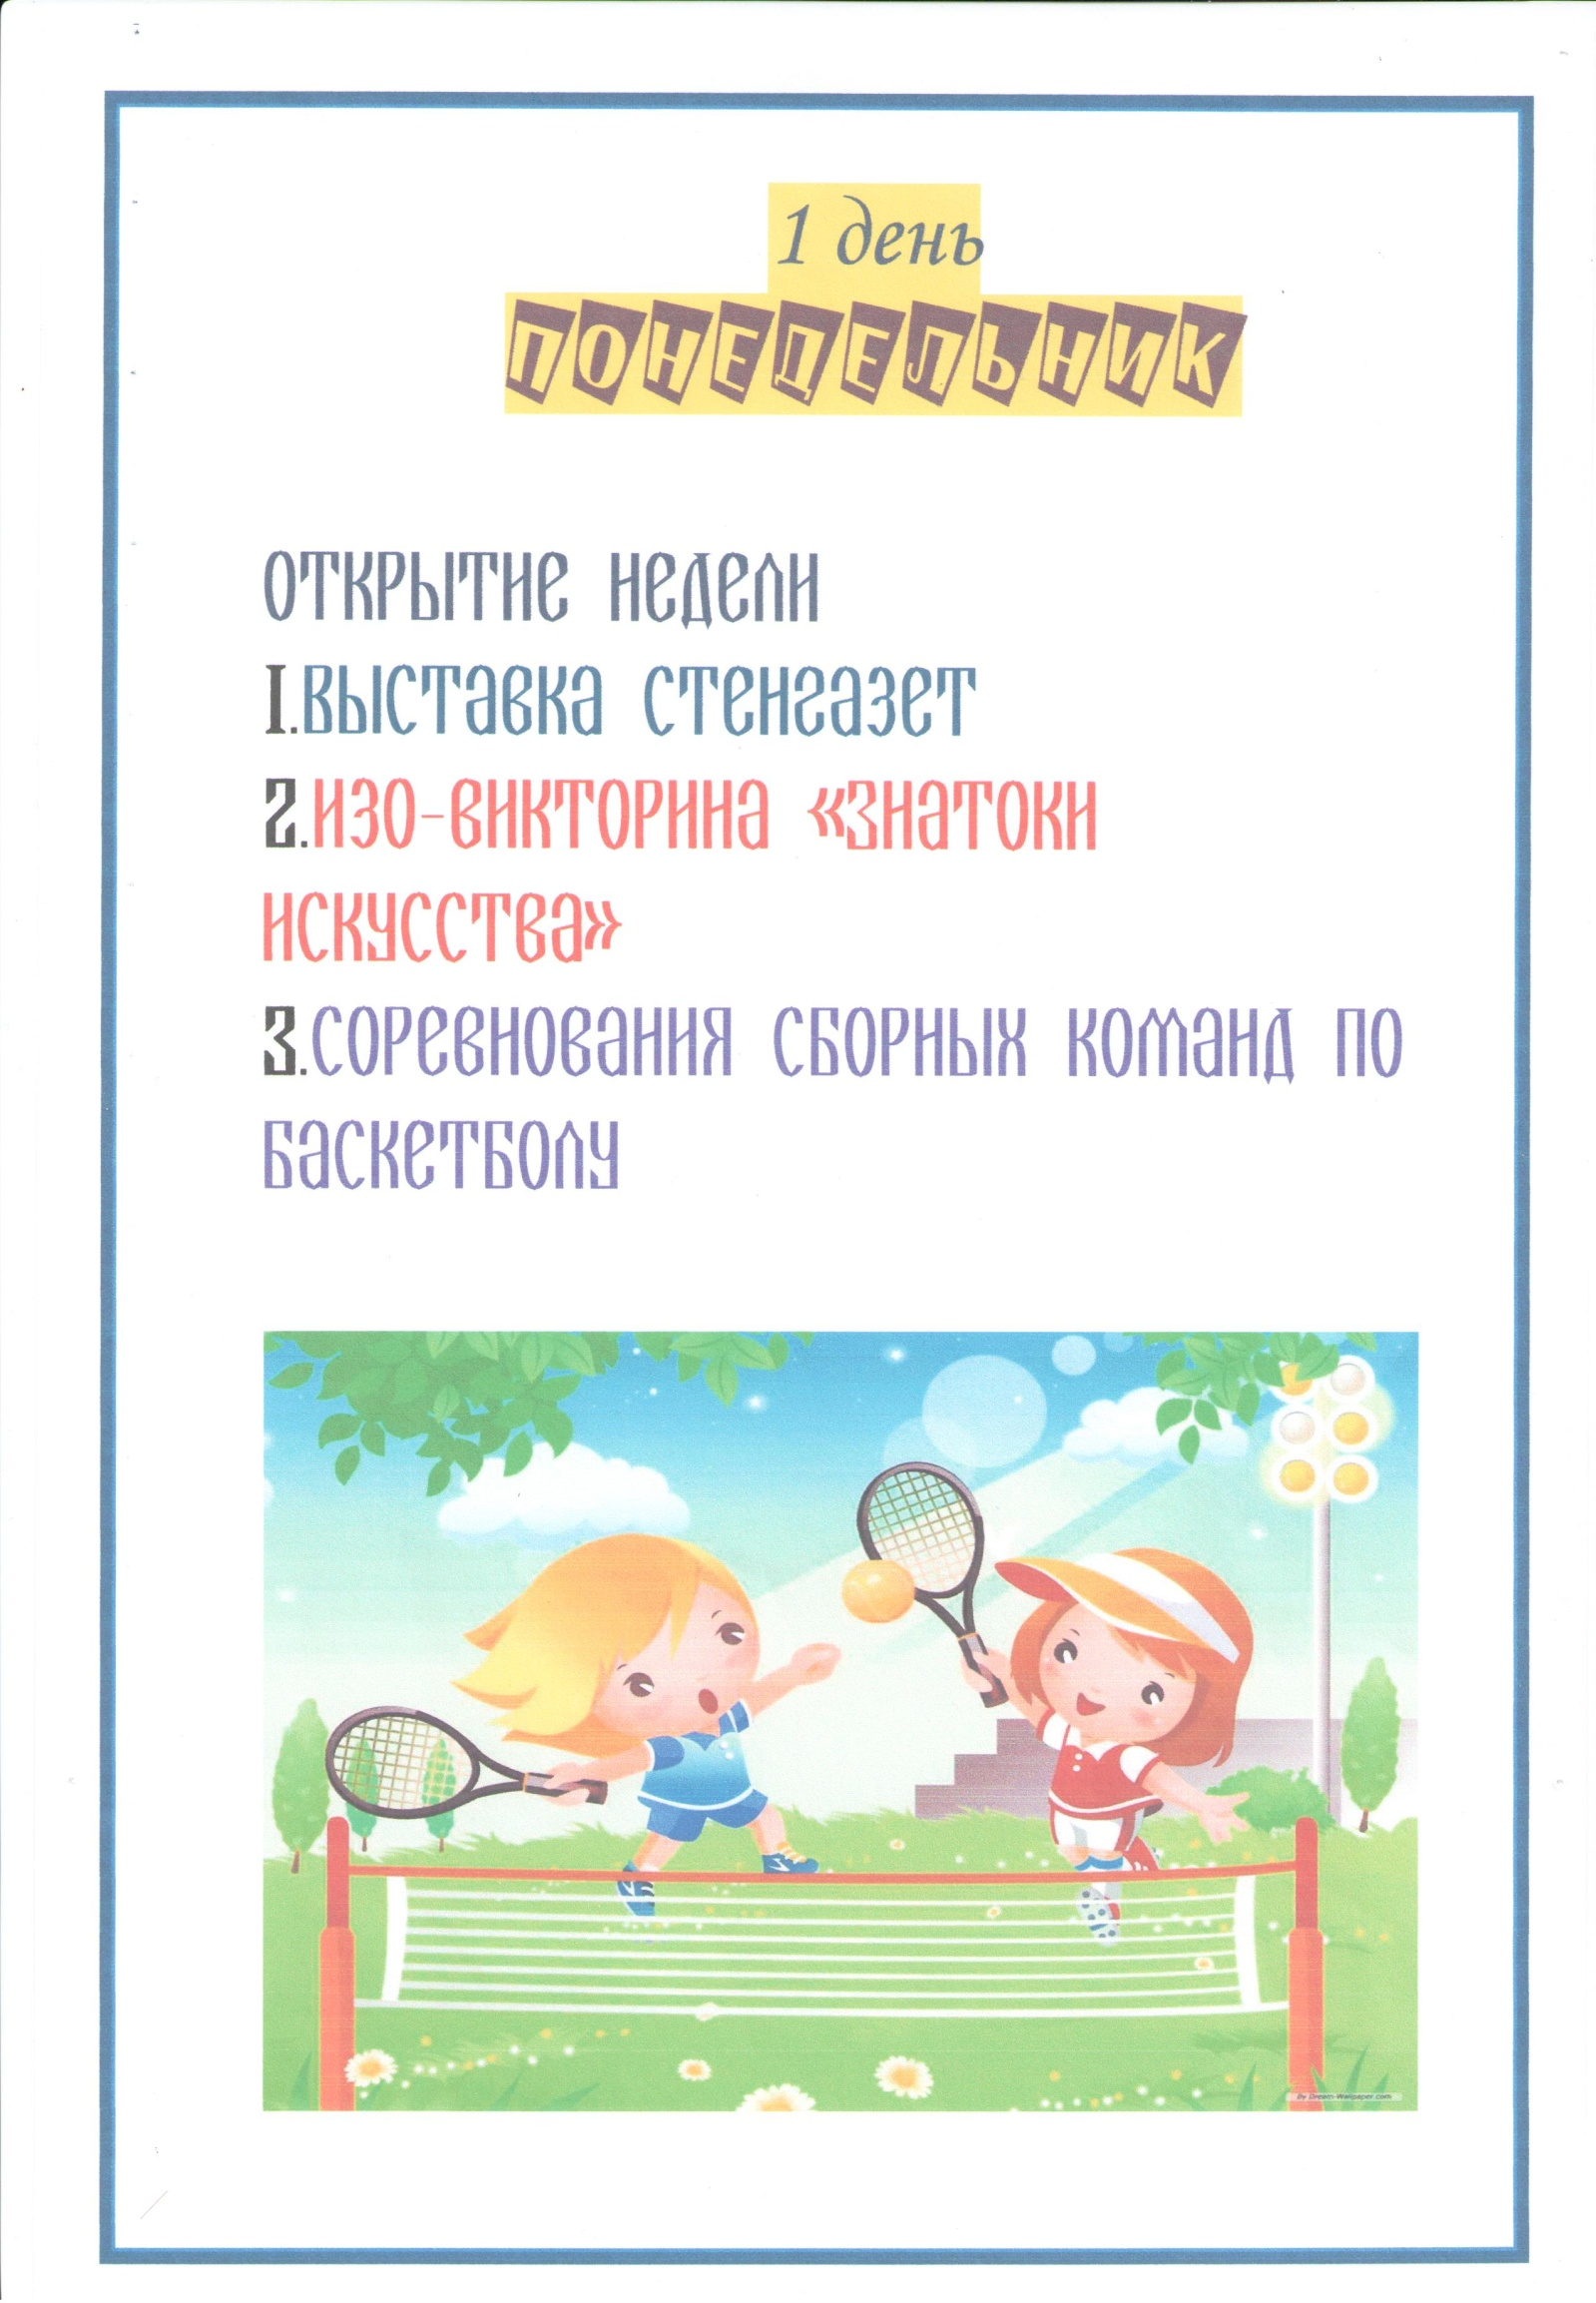 C:\Users\1\Documents\Scanned Documents\1 день.jpeg